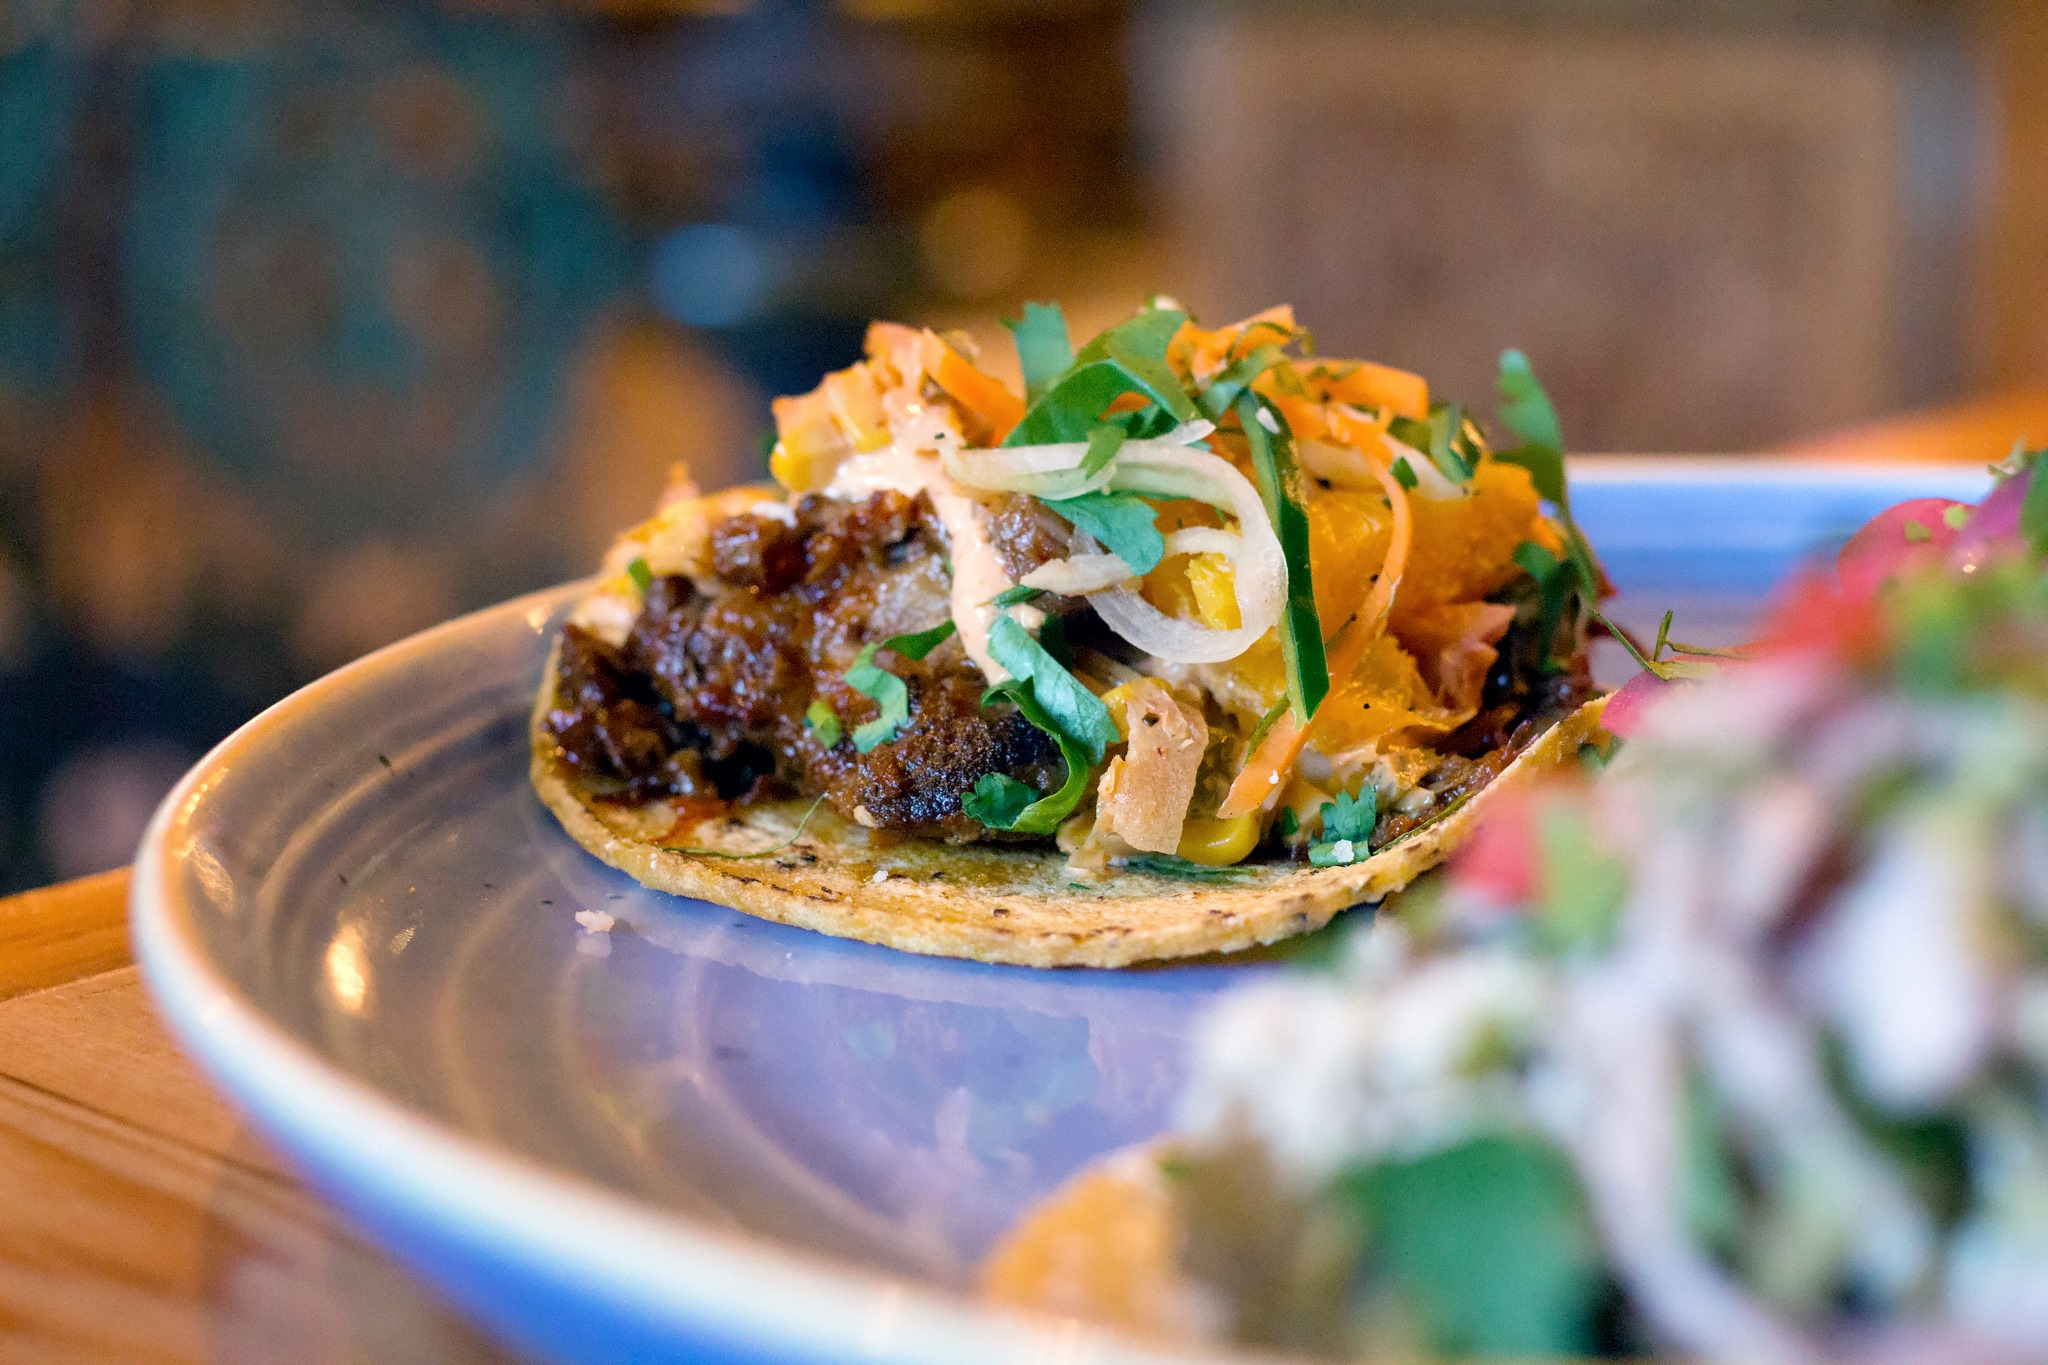 Tacos sit on a blue plate, with corn tortillas and meat and toppings piled high